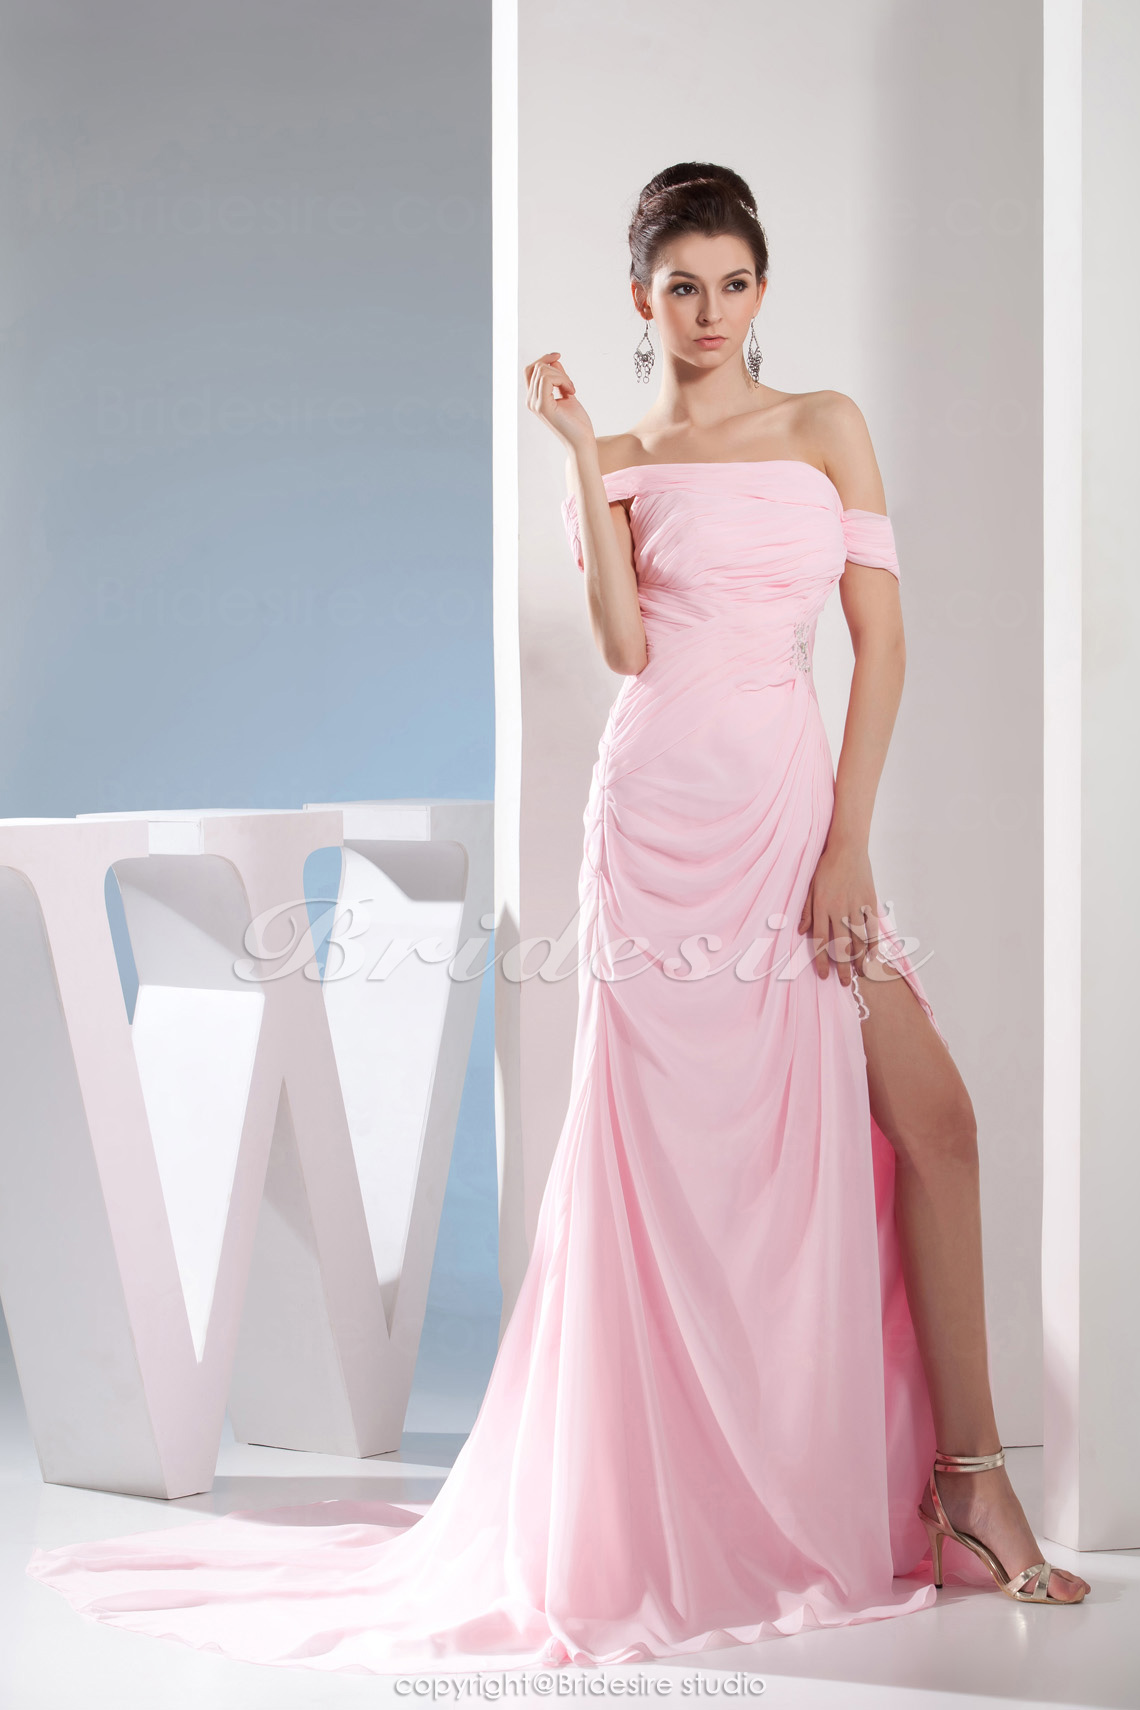 A-line Off-the-shoulder Floor-length Sweep/Brush Train Sleeveless Chiffon Dress